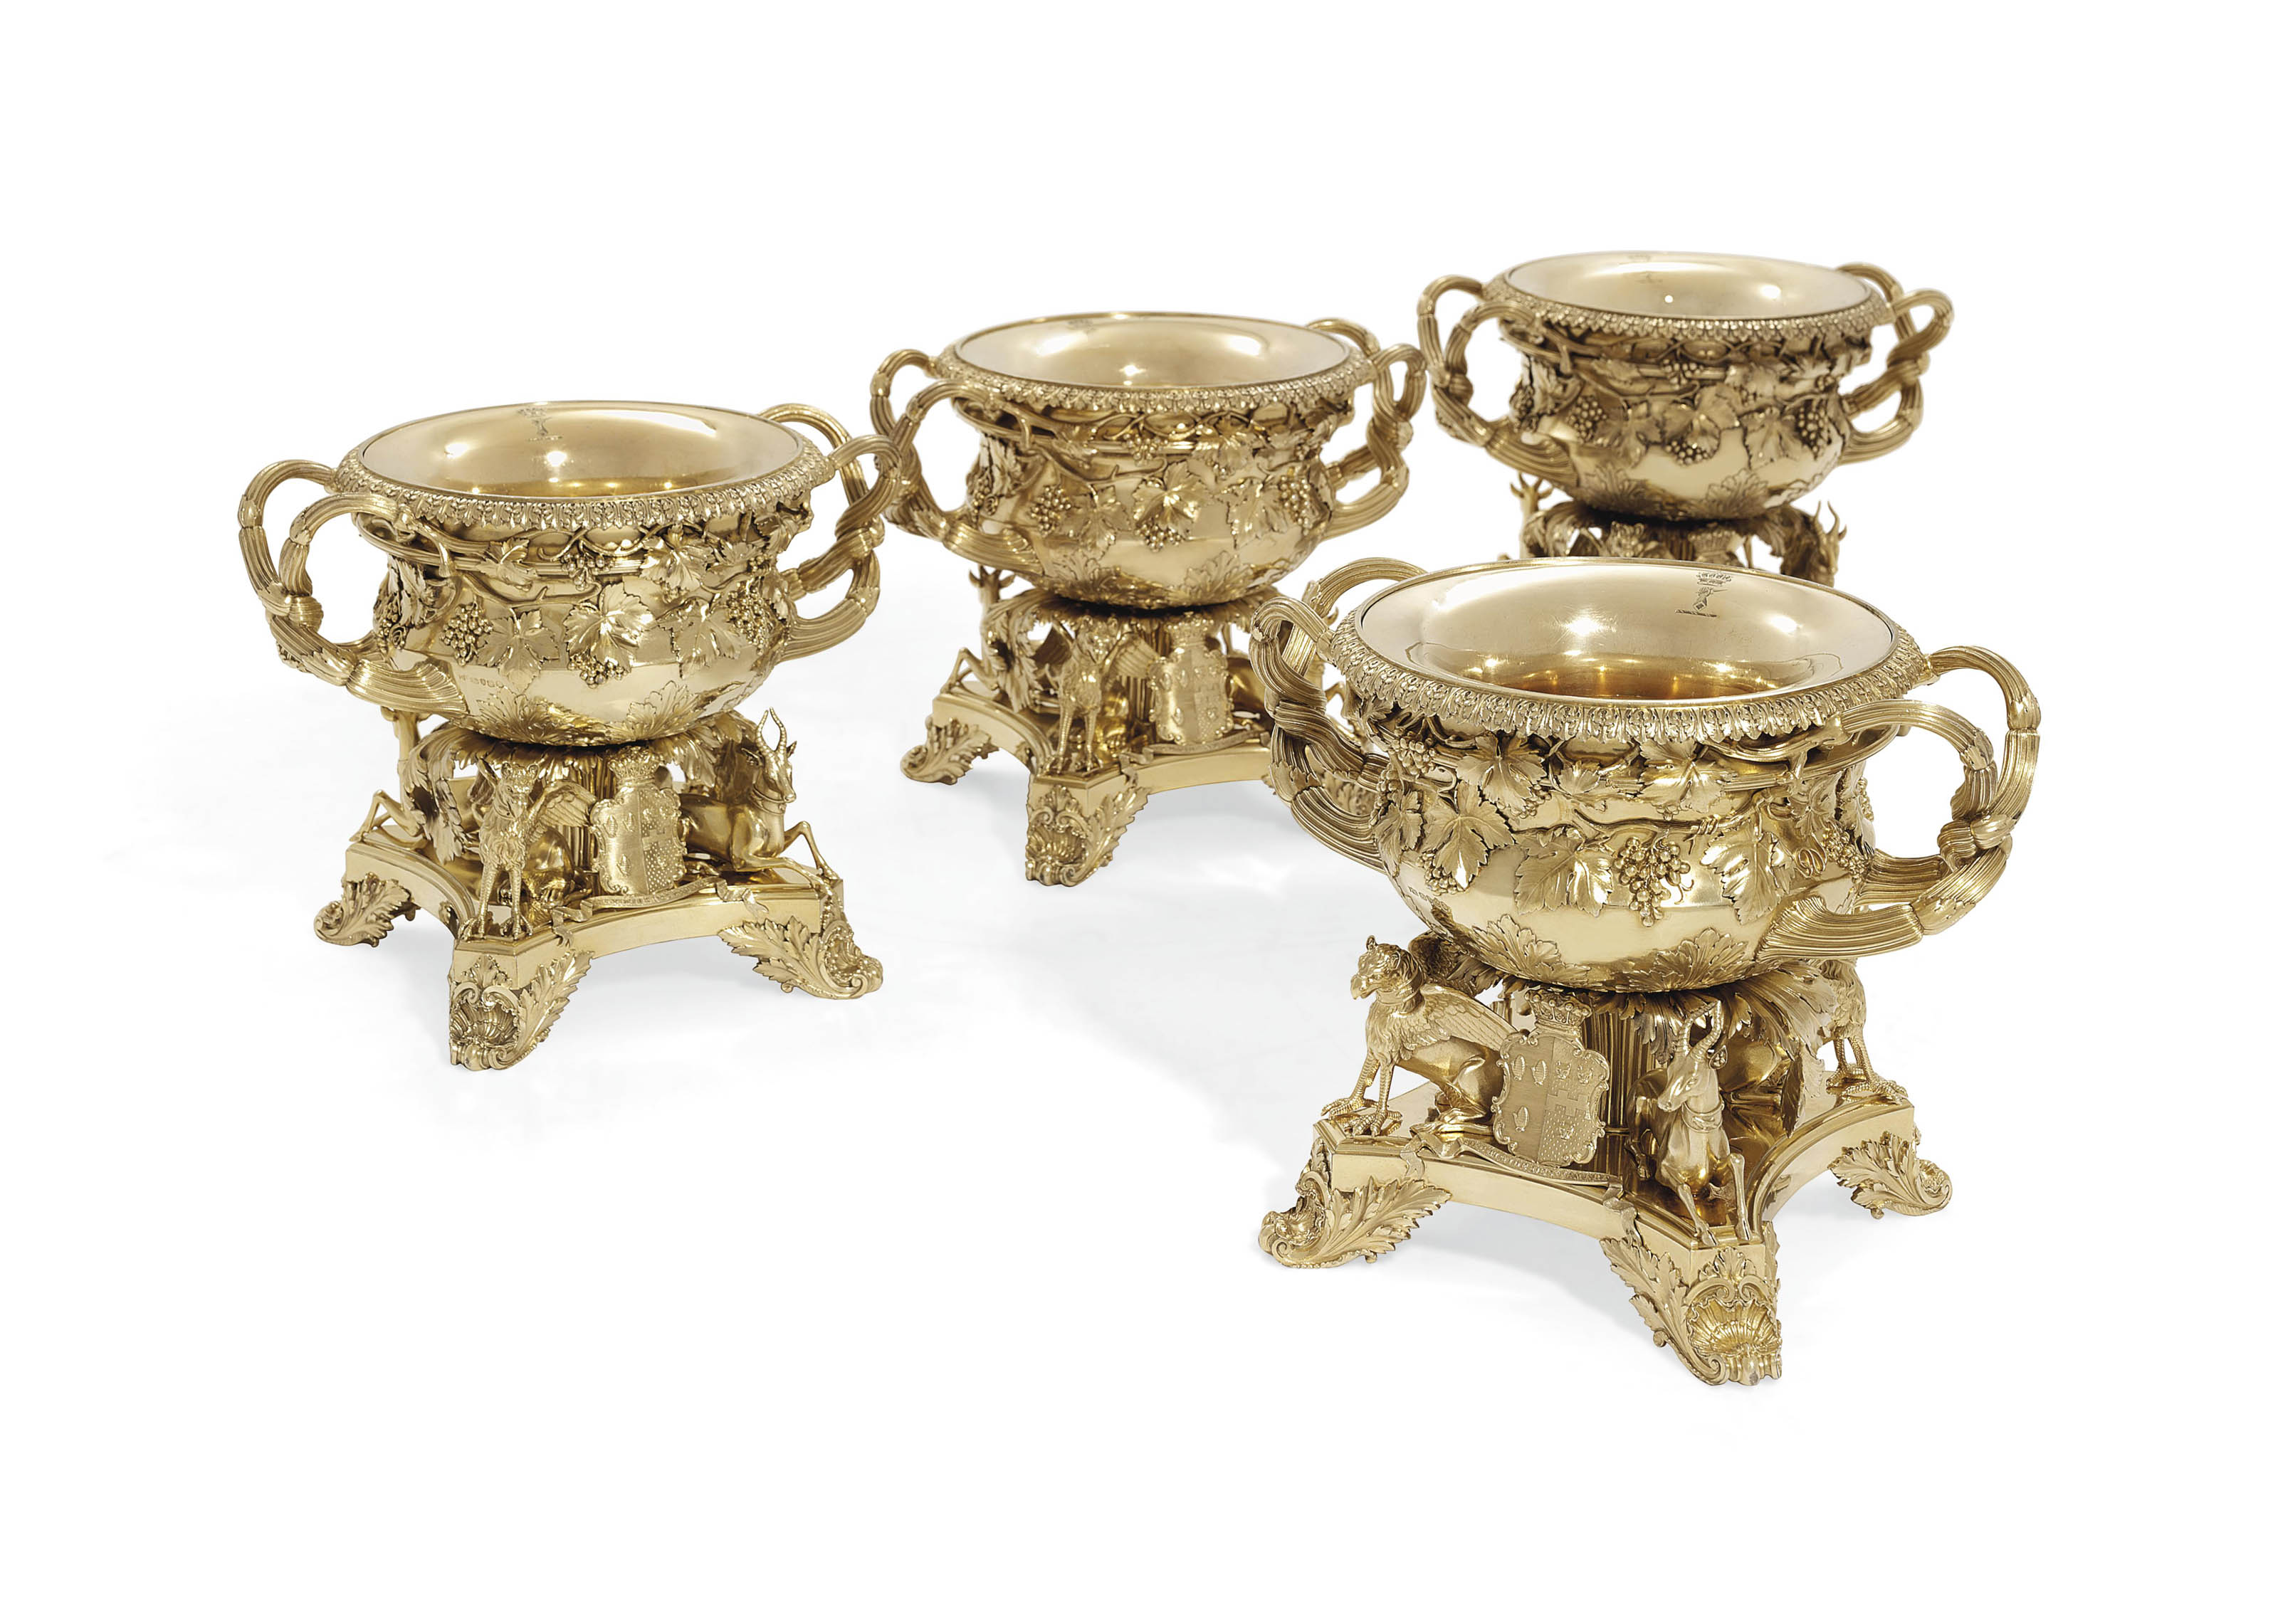 A SET OF FOUR GEORGE III SILVER-GILT WINE-COOLERS, COLLARS AND LINERS